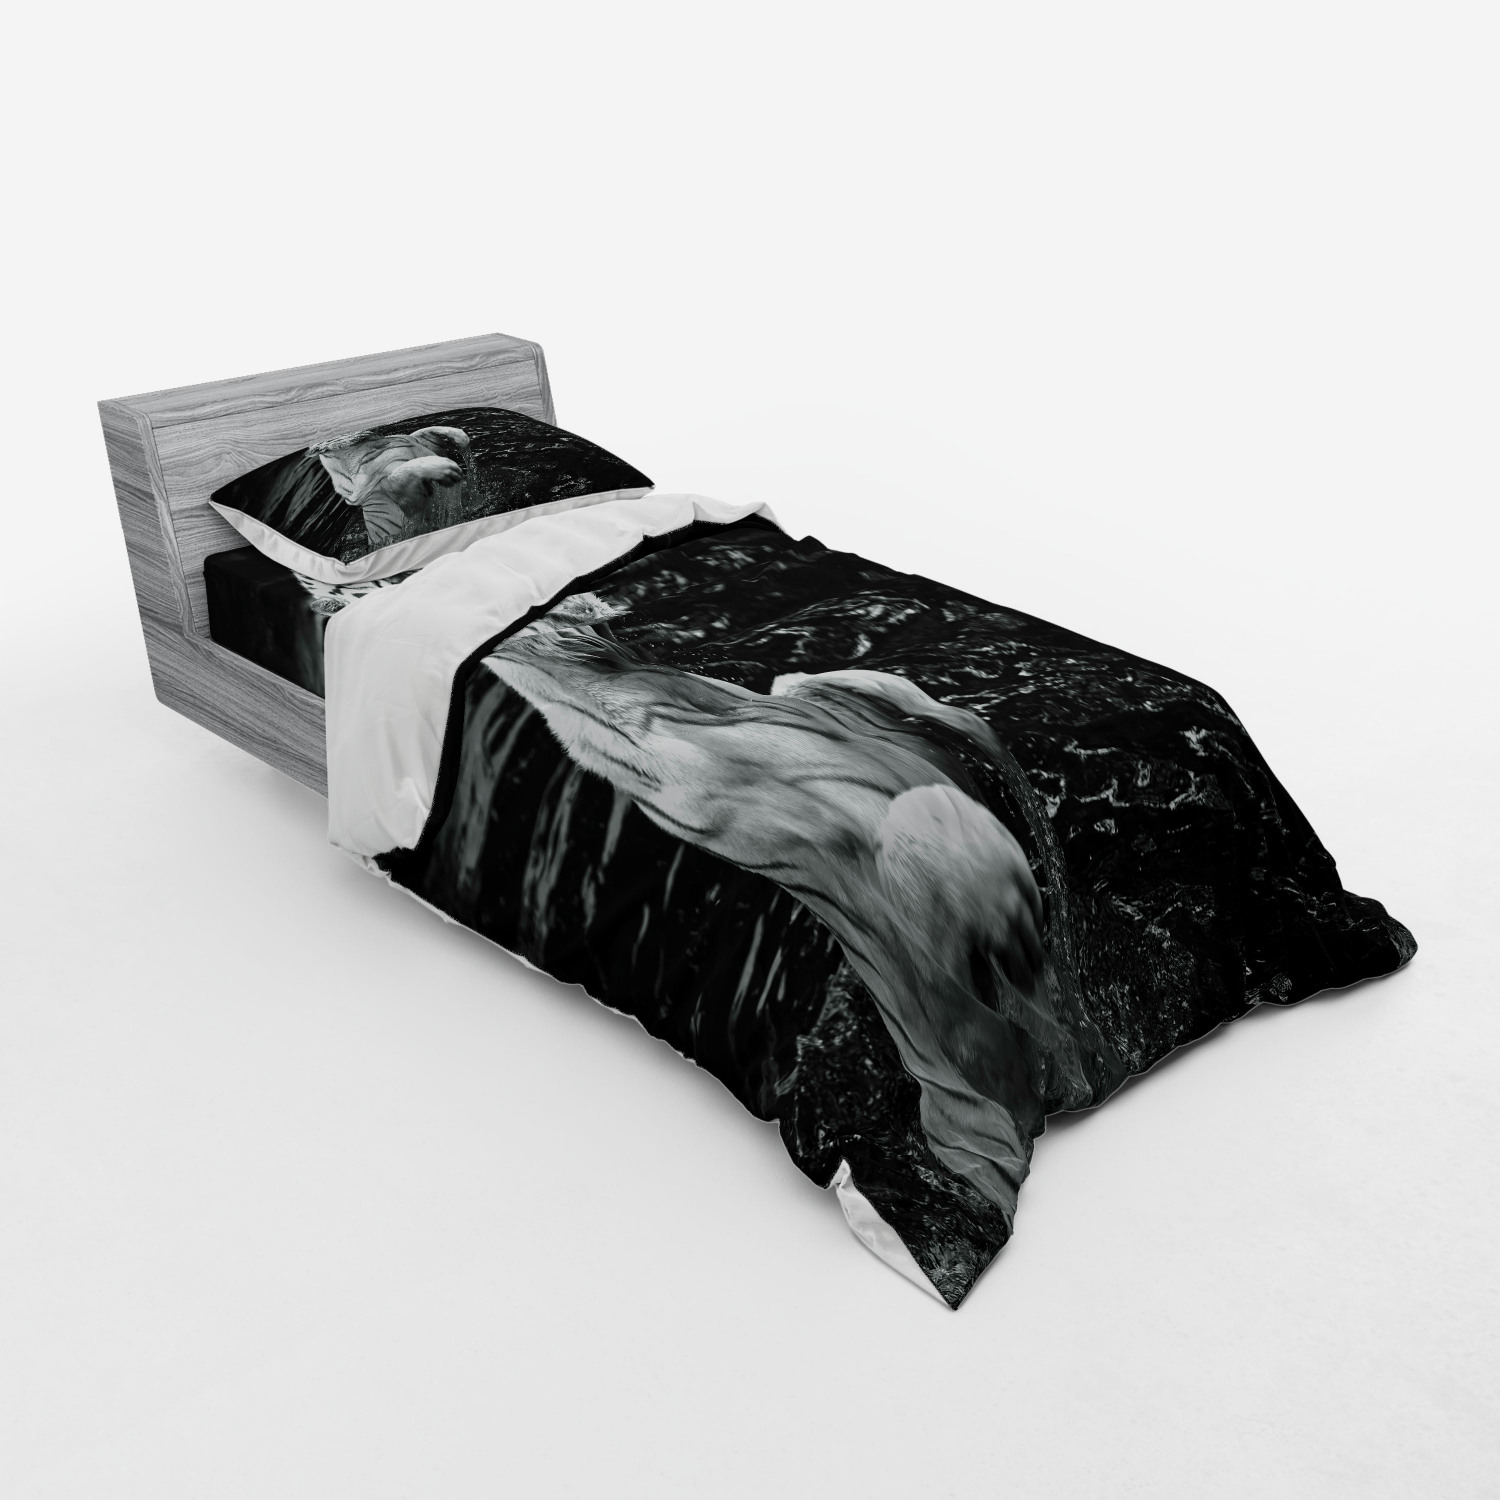 thumbnail 85 - Ambesonne Black White Art Bedding Set Duvet Cover Sham Fitted Sheet in 3 Sizes